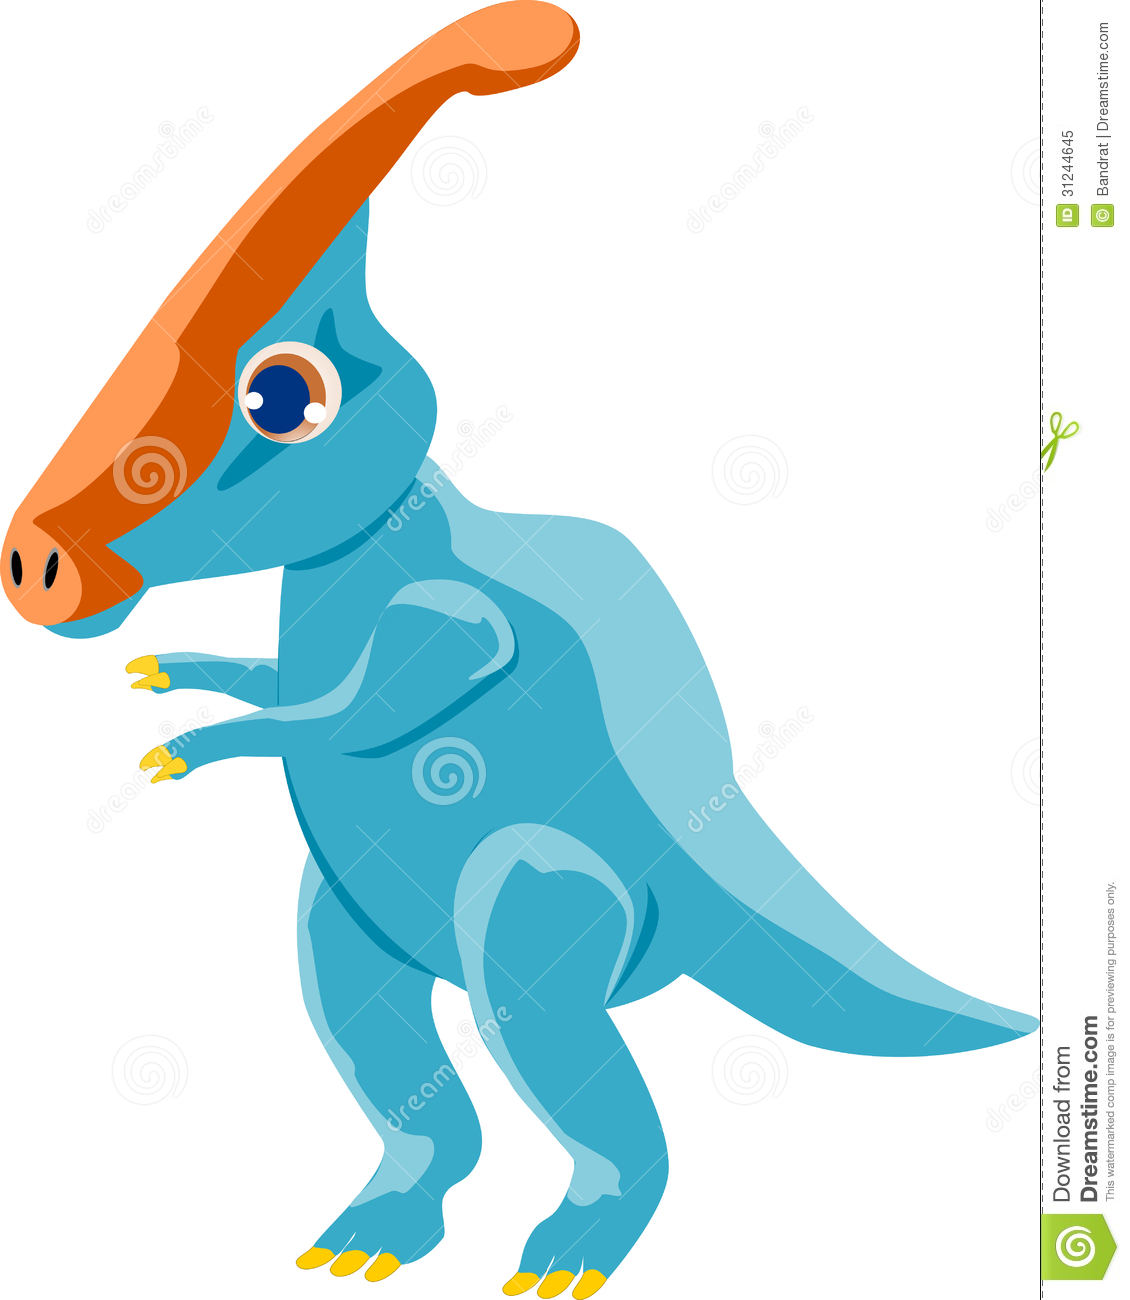 Parasaurolophus clipart #17, Download drawings